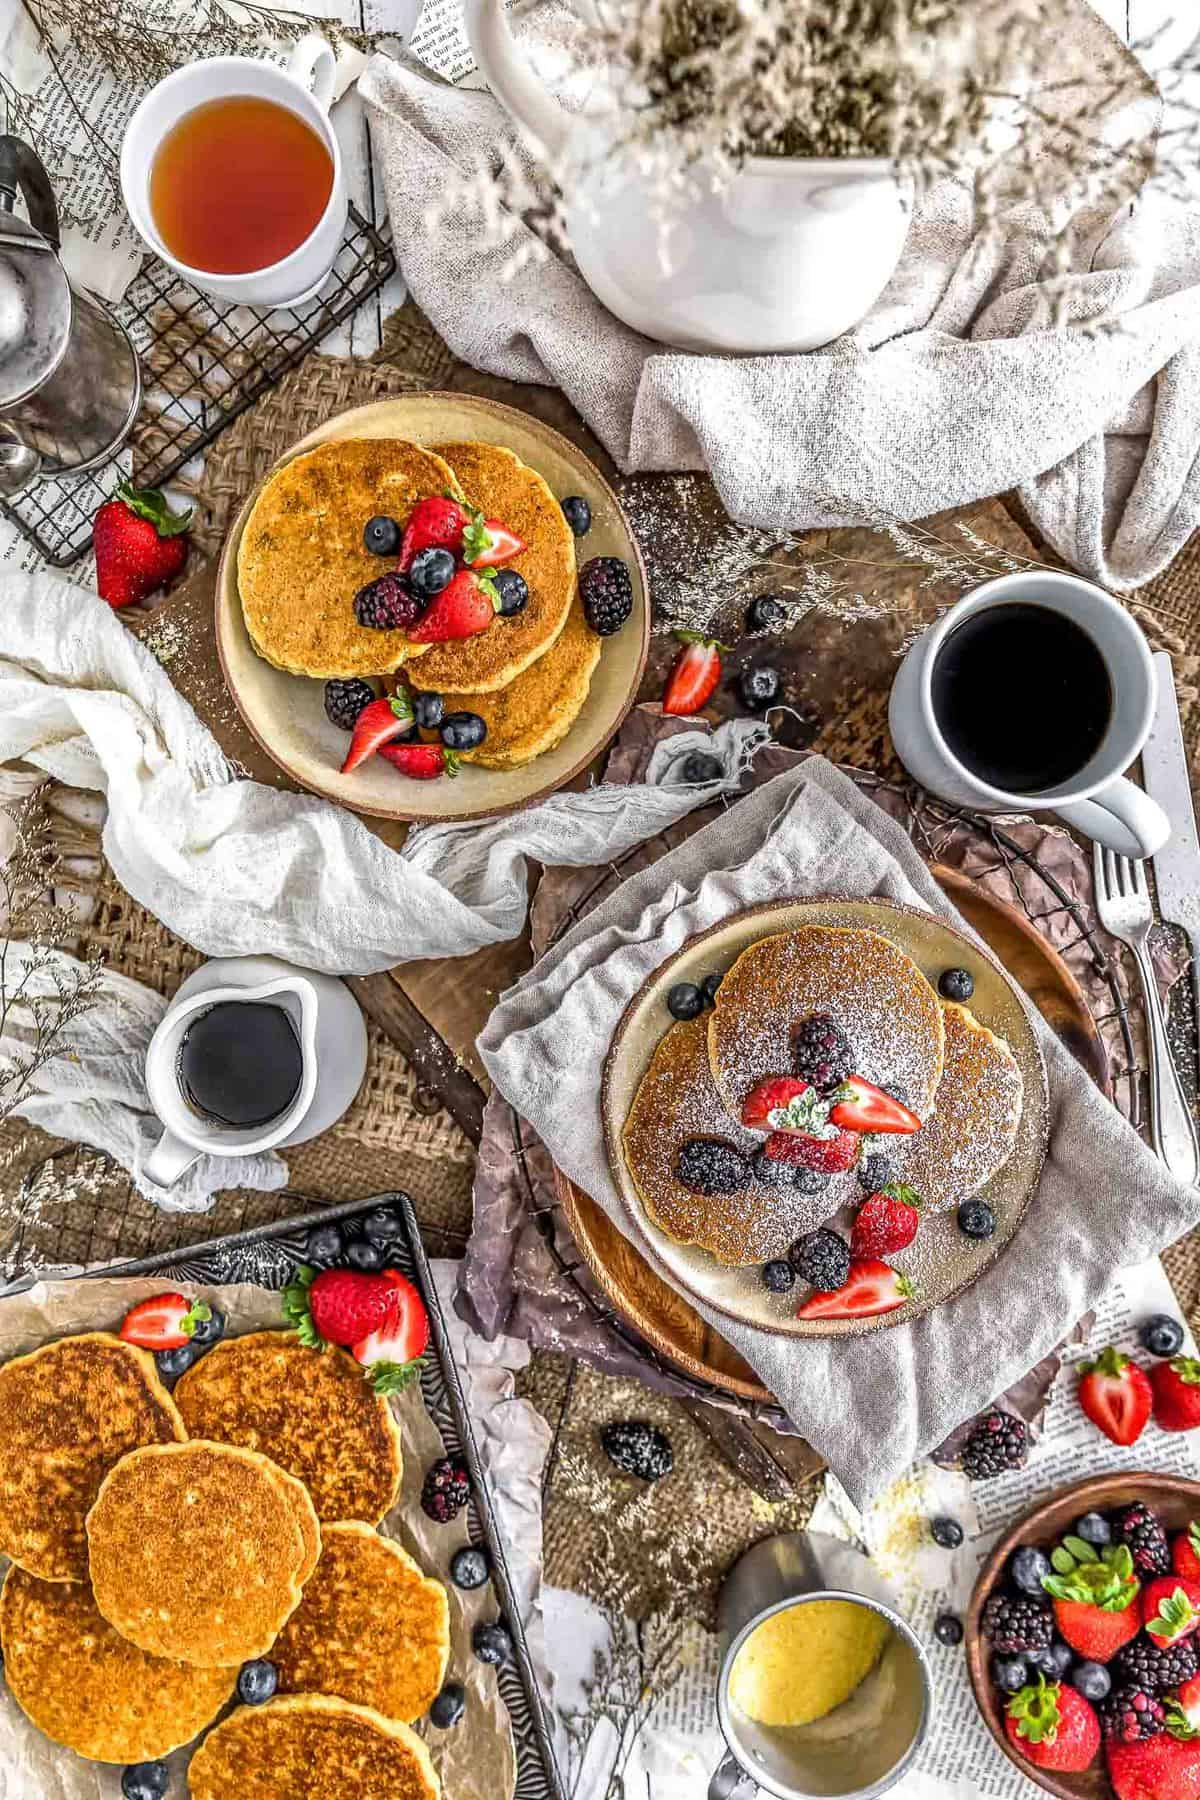 Tablescape of Healthy Vegan Cornmeal Pancakes